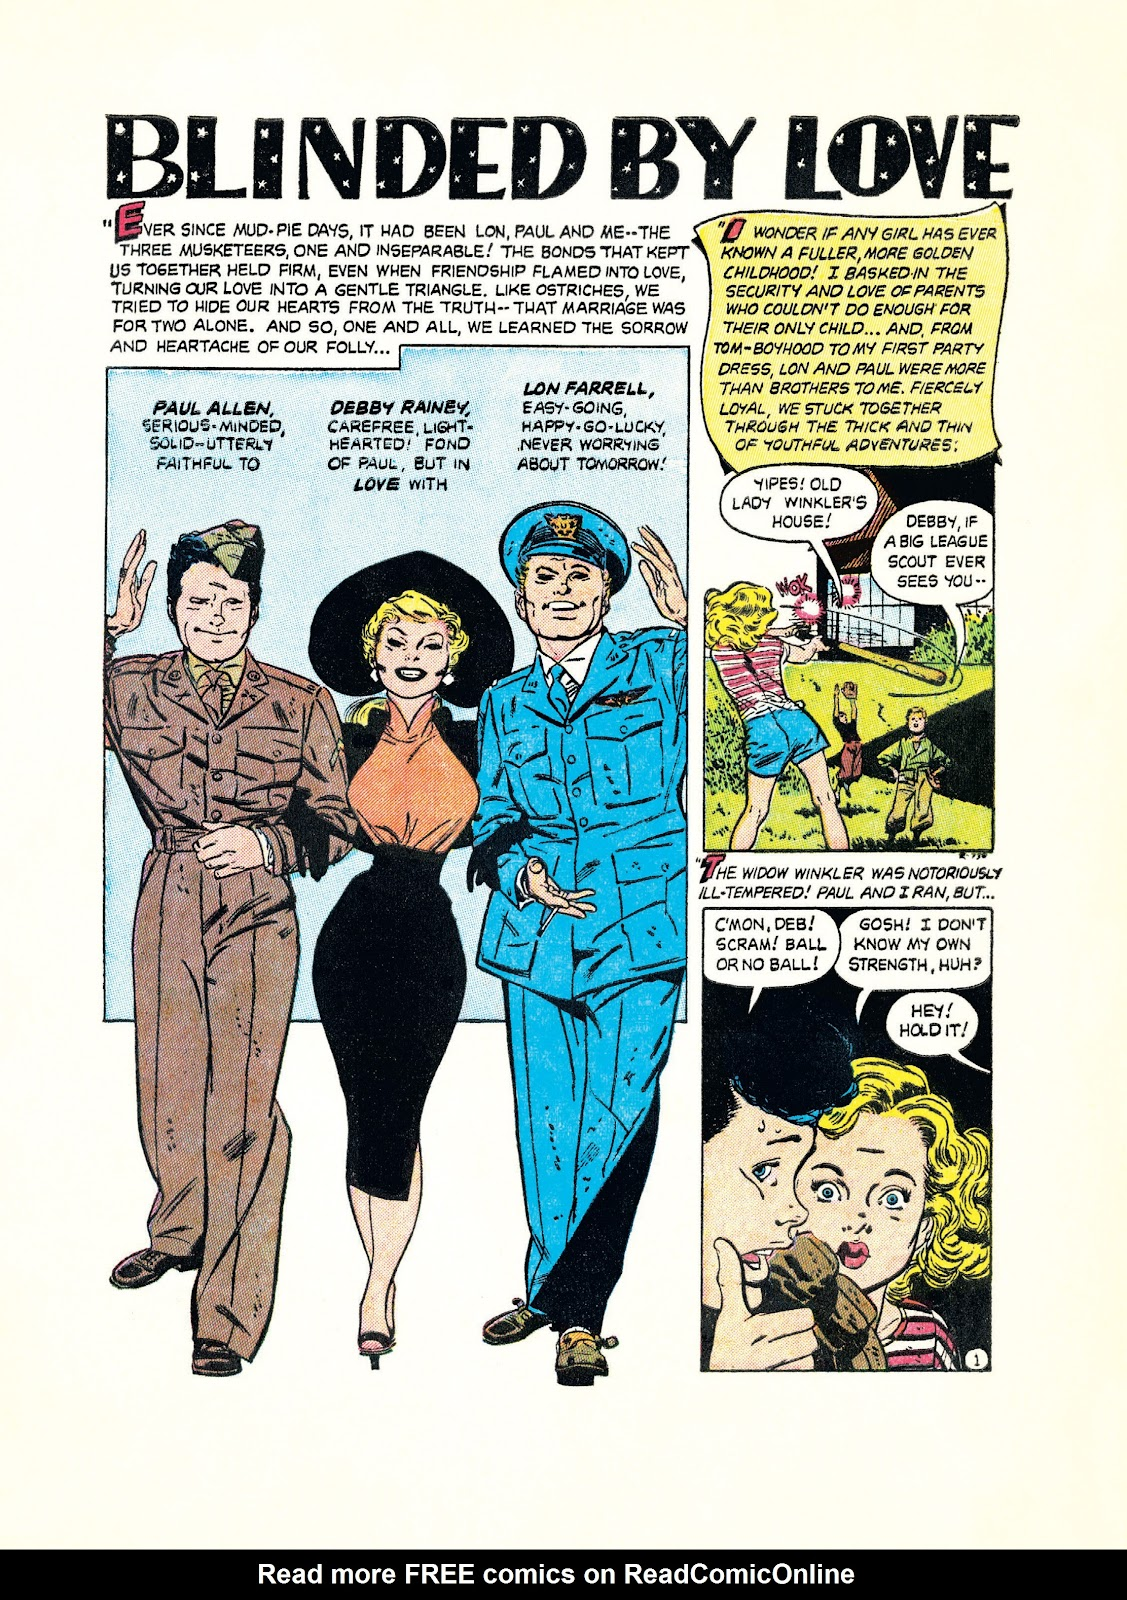 Read online Setting the Standard: Comics by Alex Toth 1952-1954 comic -  Issue # TPB (Part 2) - 87